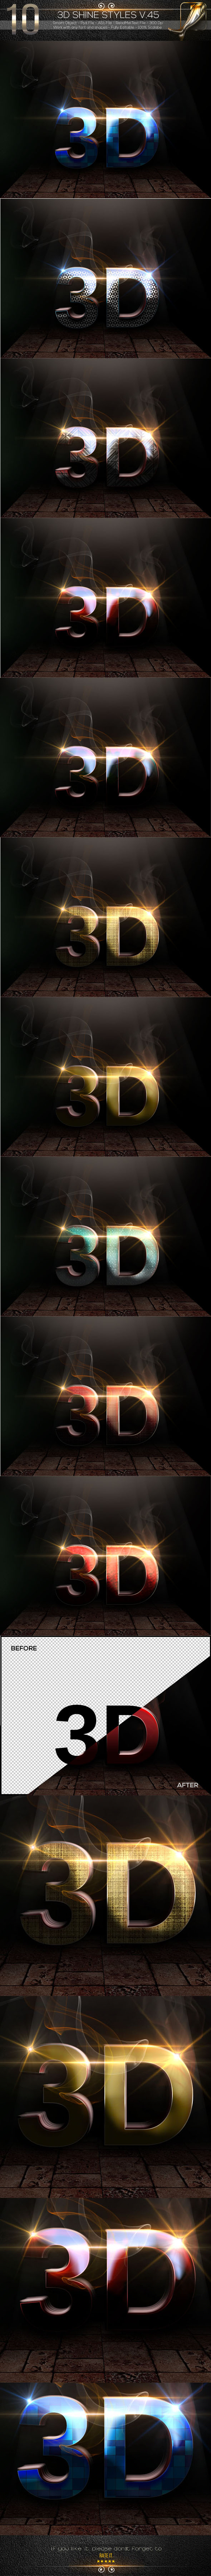 10 3D Text Styles V.45 - Text Effects Styles